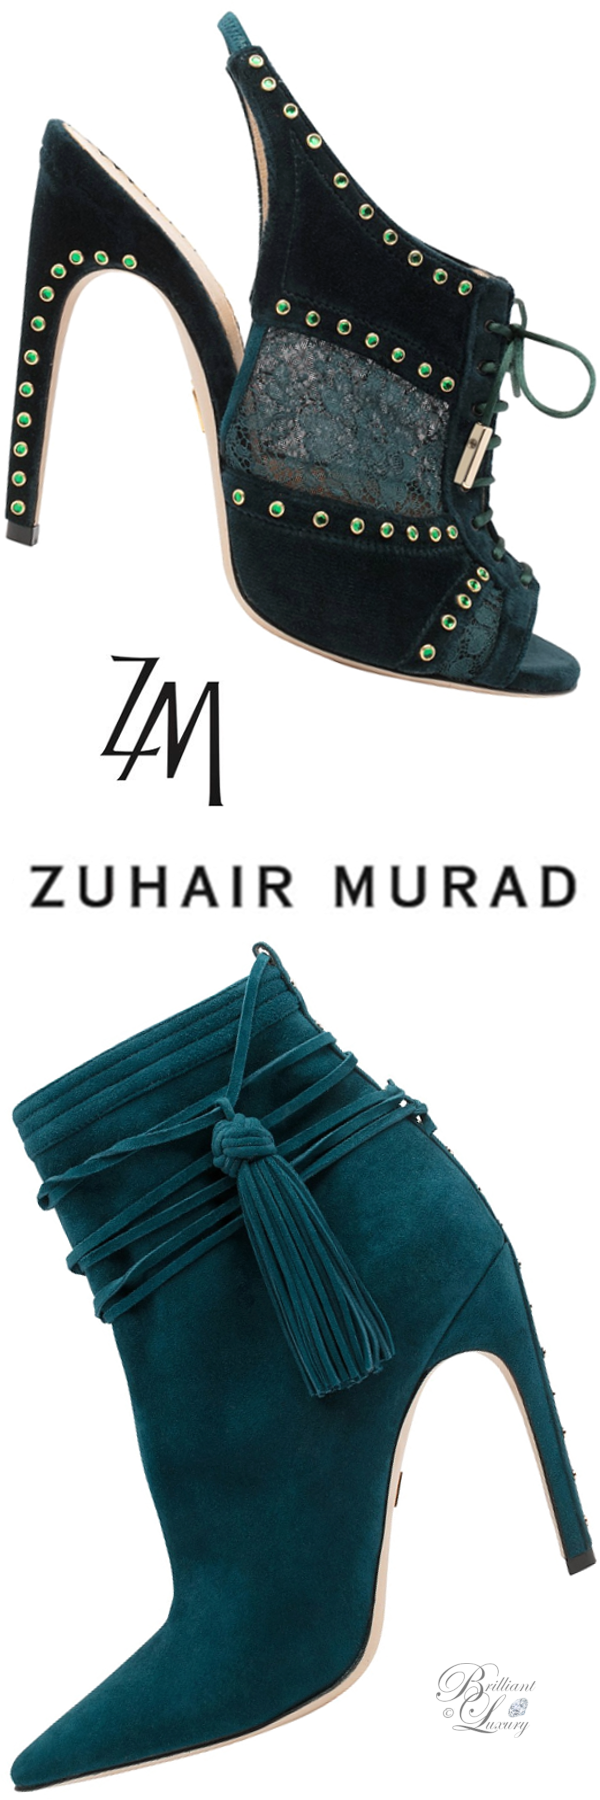 Zuhair Murad slingback peeptoe mules and tassel booties in celadon blue